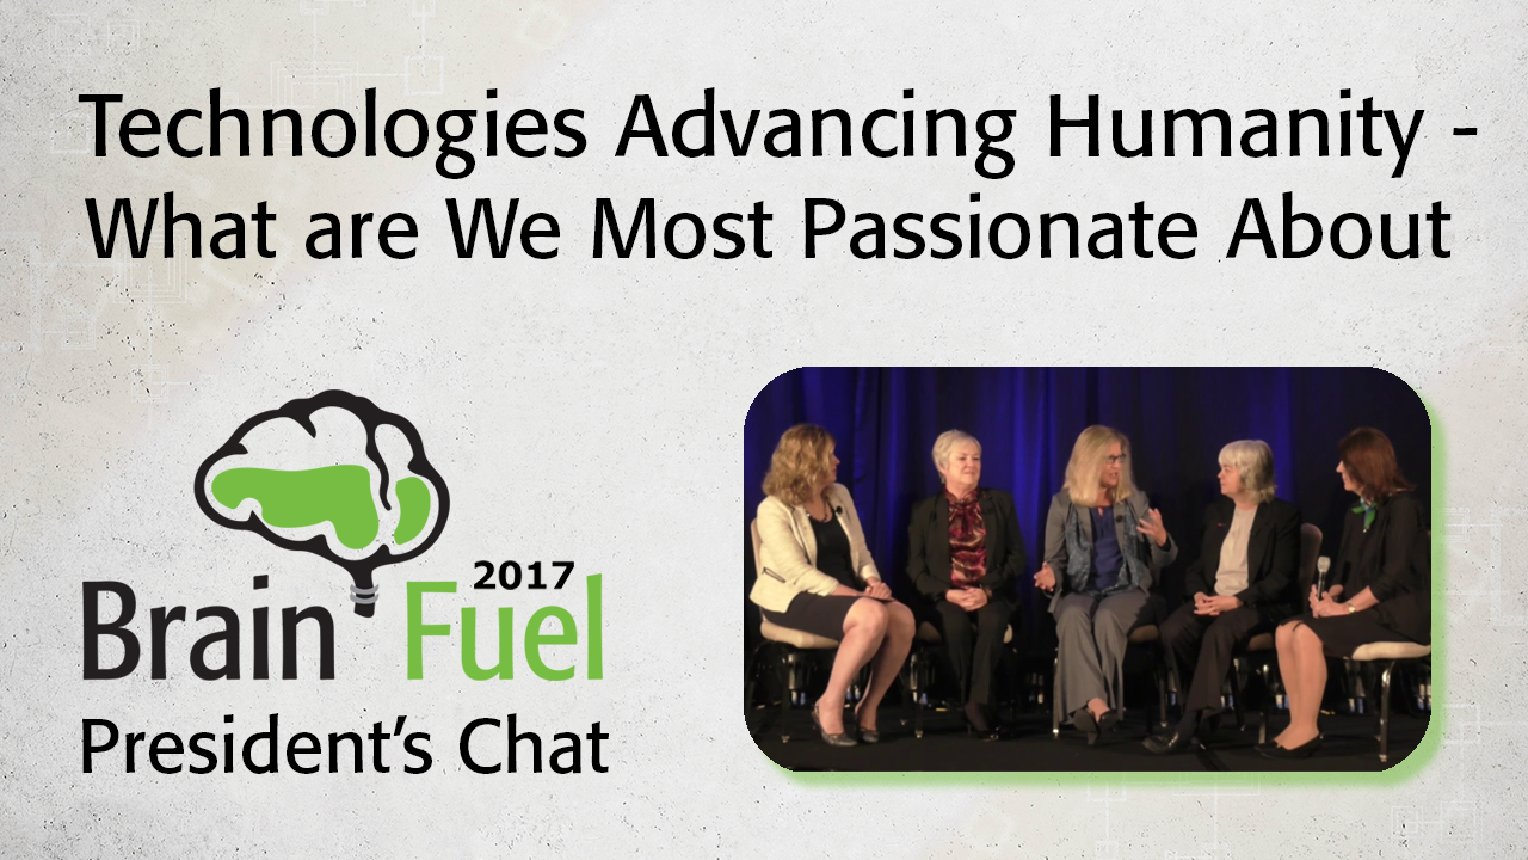 Technologies Advancing Humanity - What are We Most Passionate About: 2017 Brain Fuel President's Chat